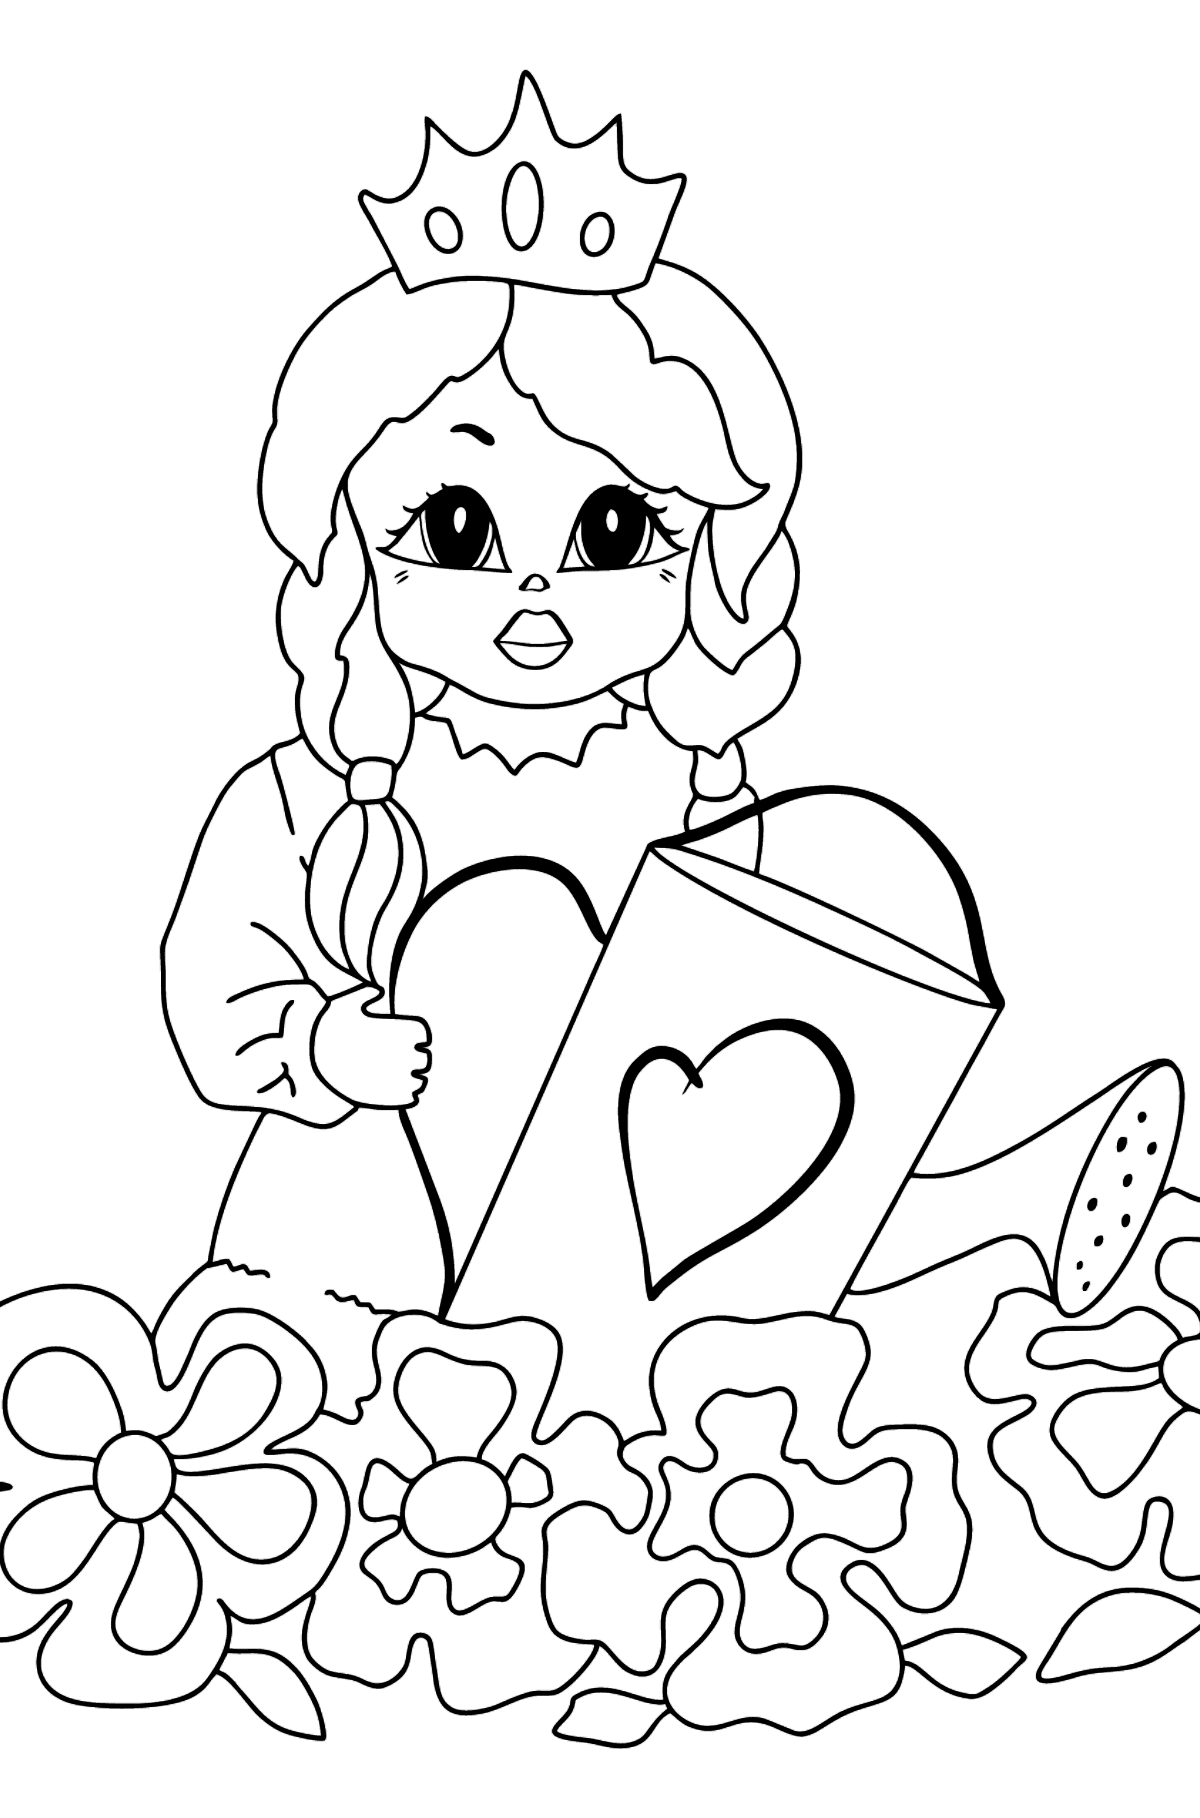 Coloring Page - A Princess with a Watering Can - For Girls - Coloring Pages for Kids